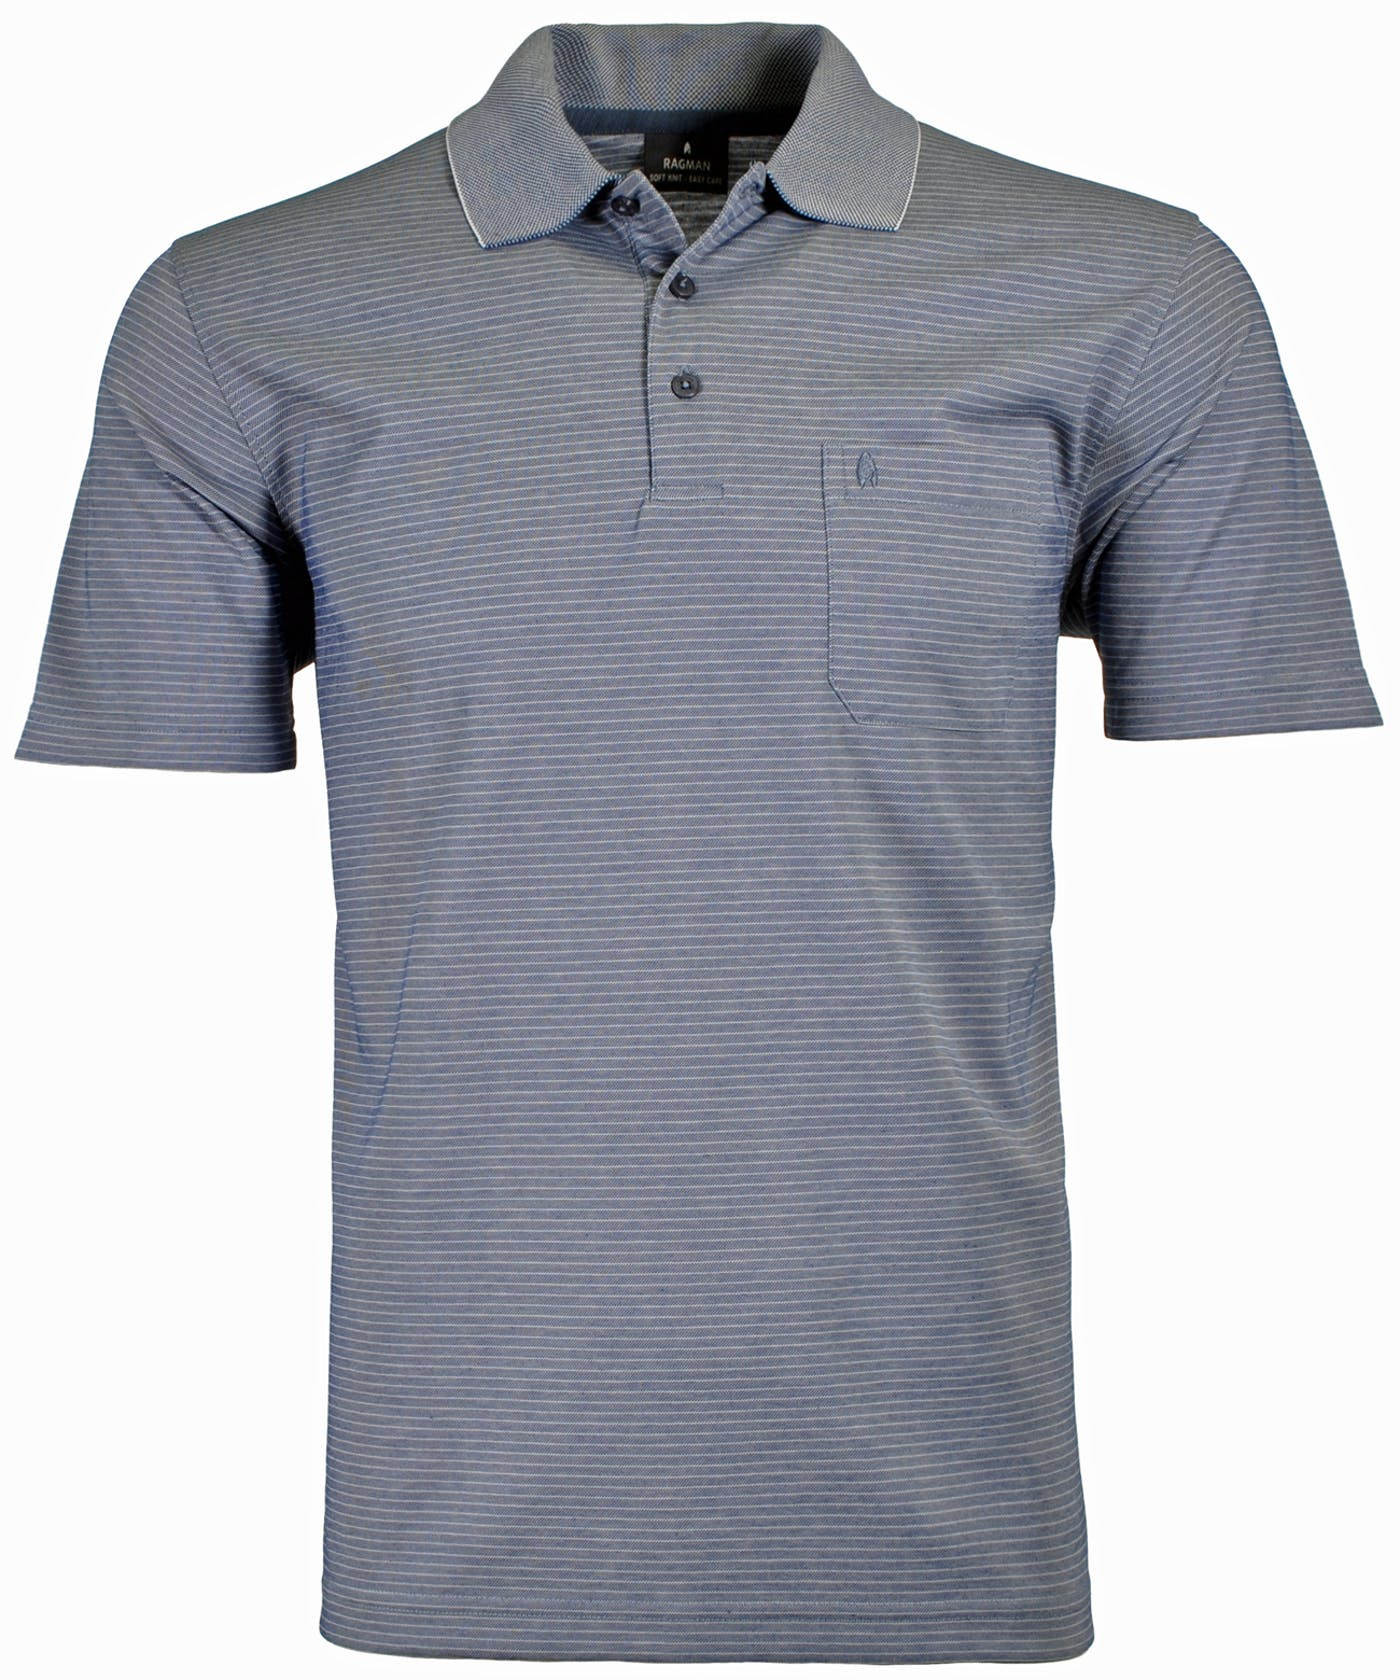 RAGMAN Softknit-Polo fein gestreift